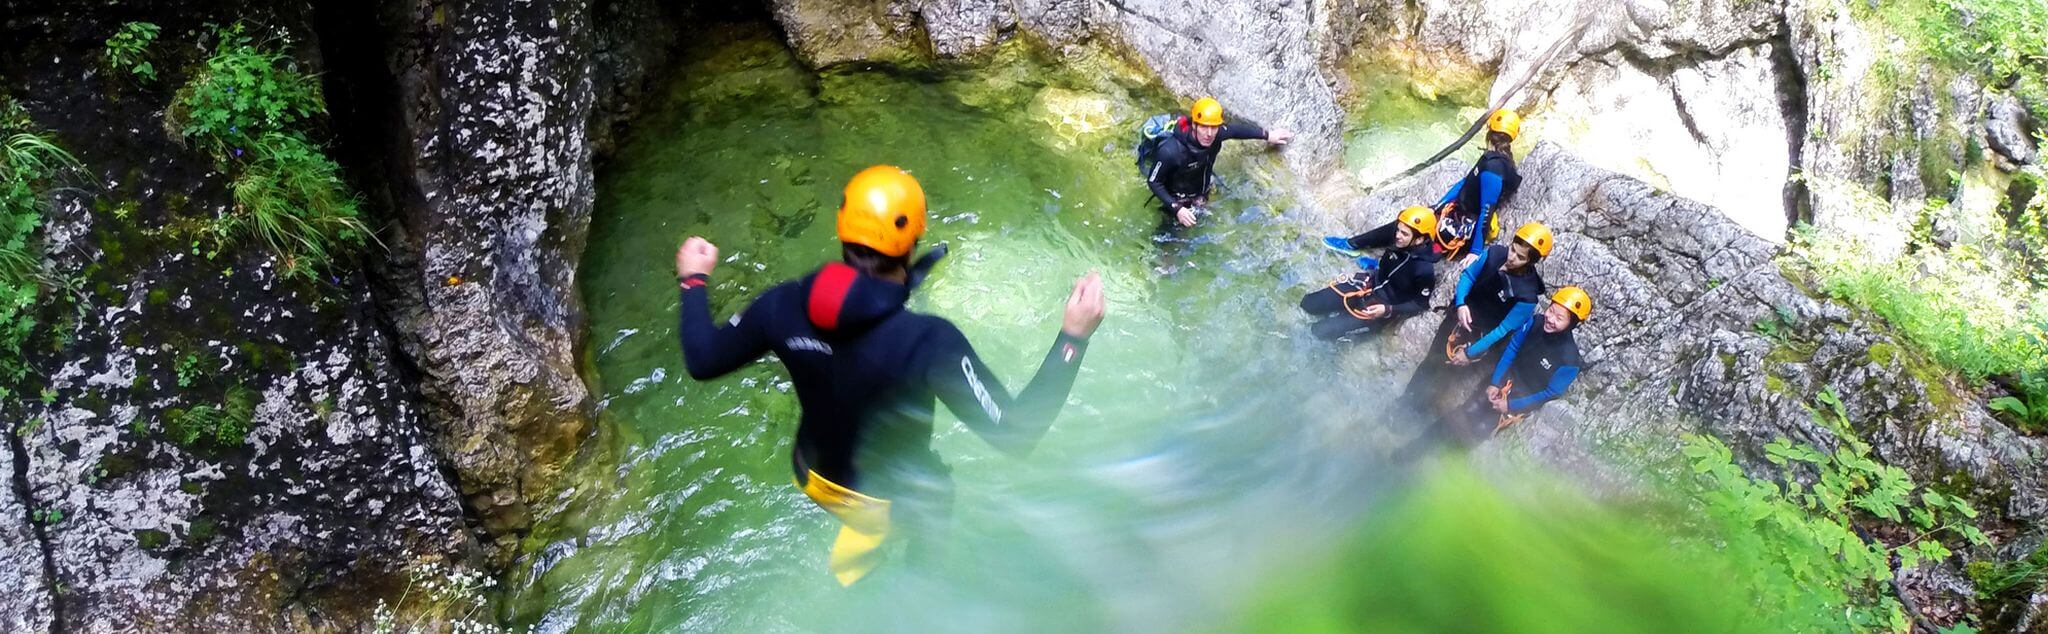 Canyoning in Almàssera